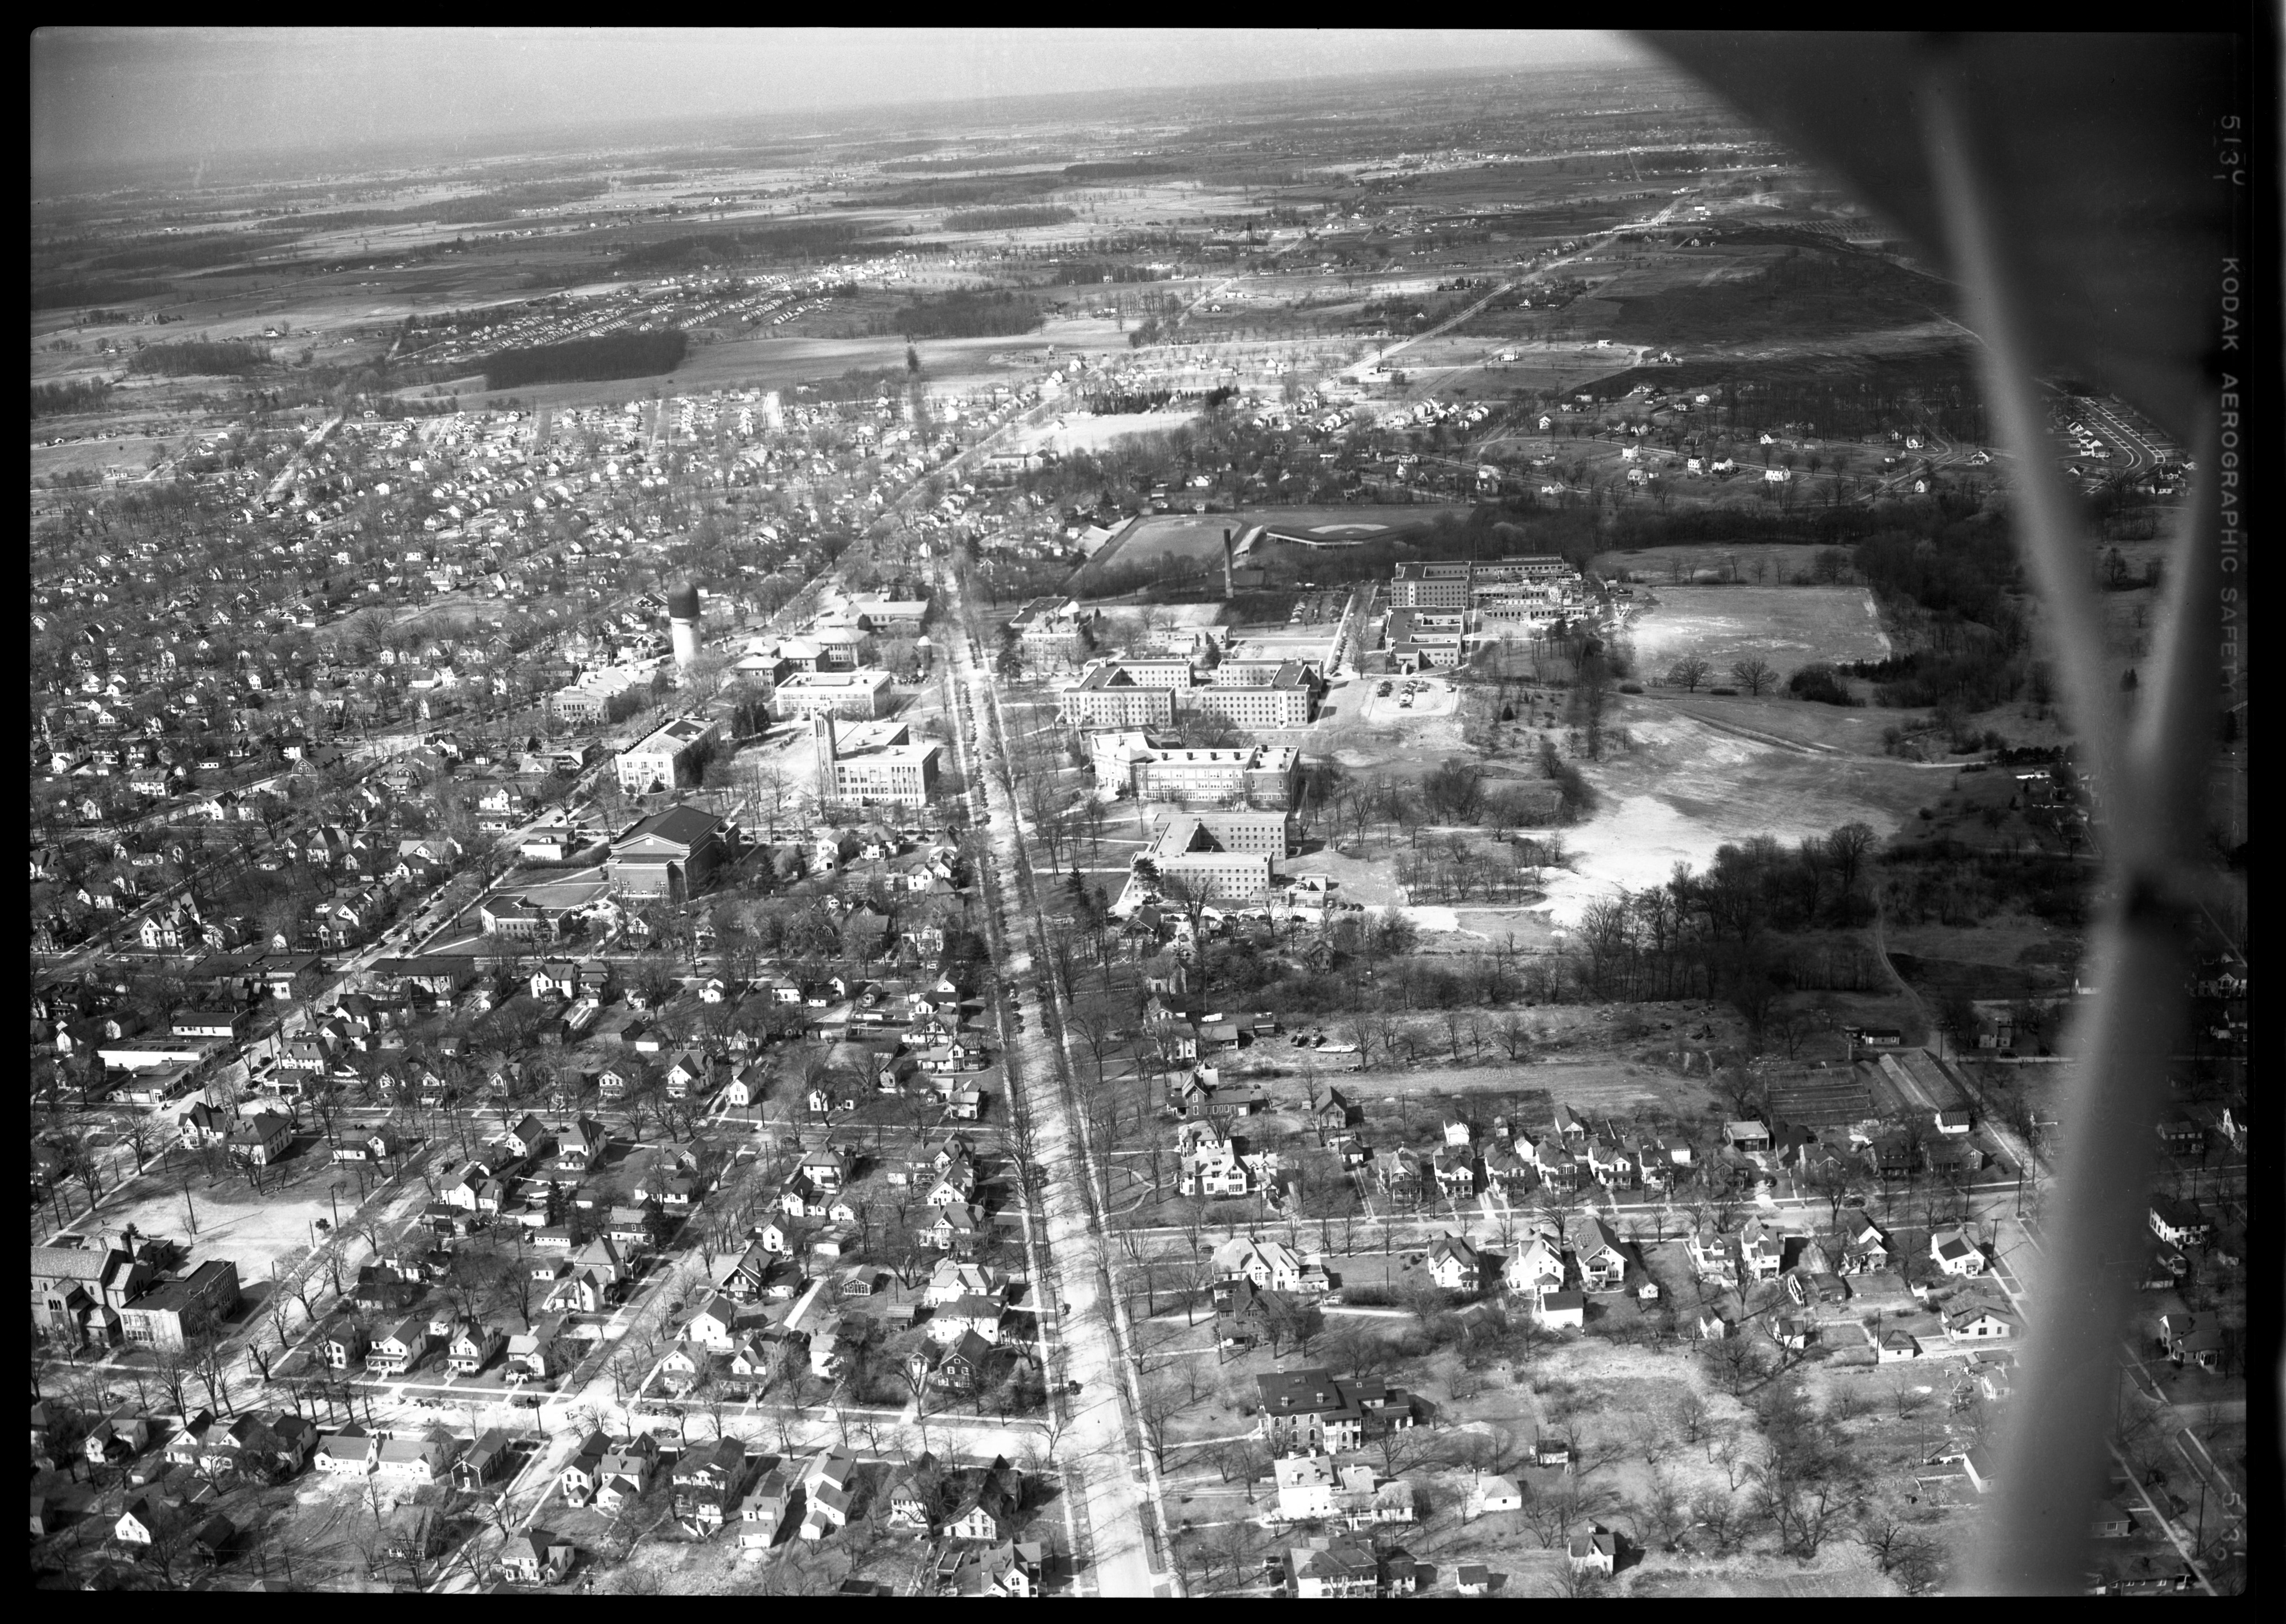 Ypsilanti State Normal School From Air, circa 1947 image